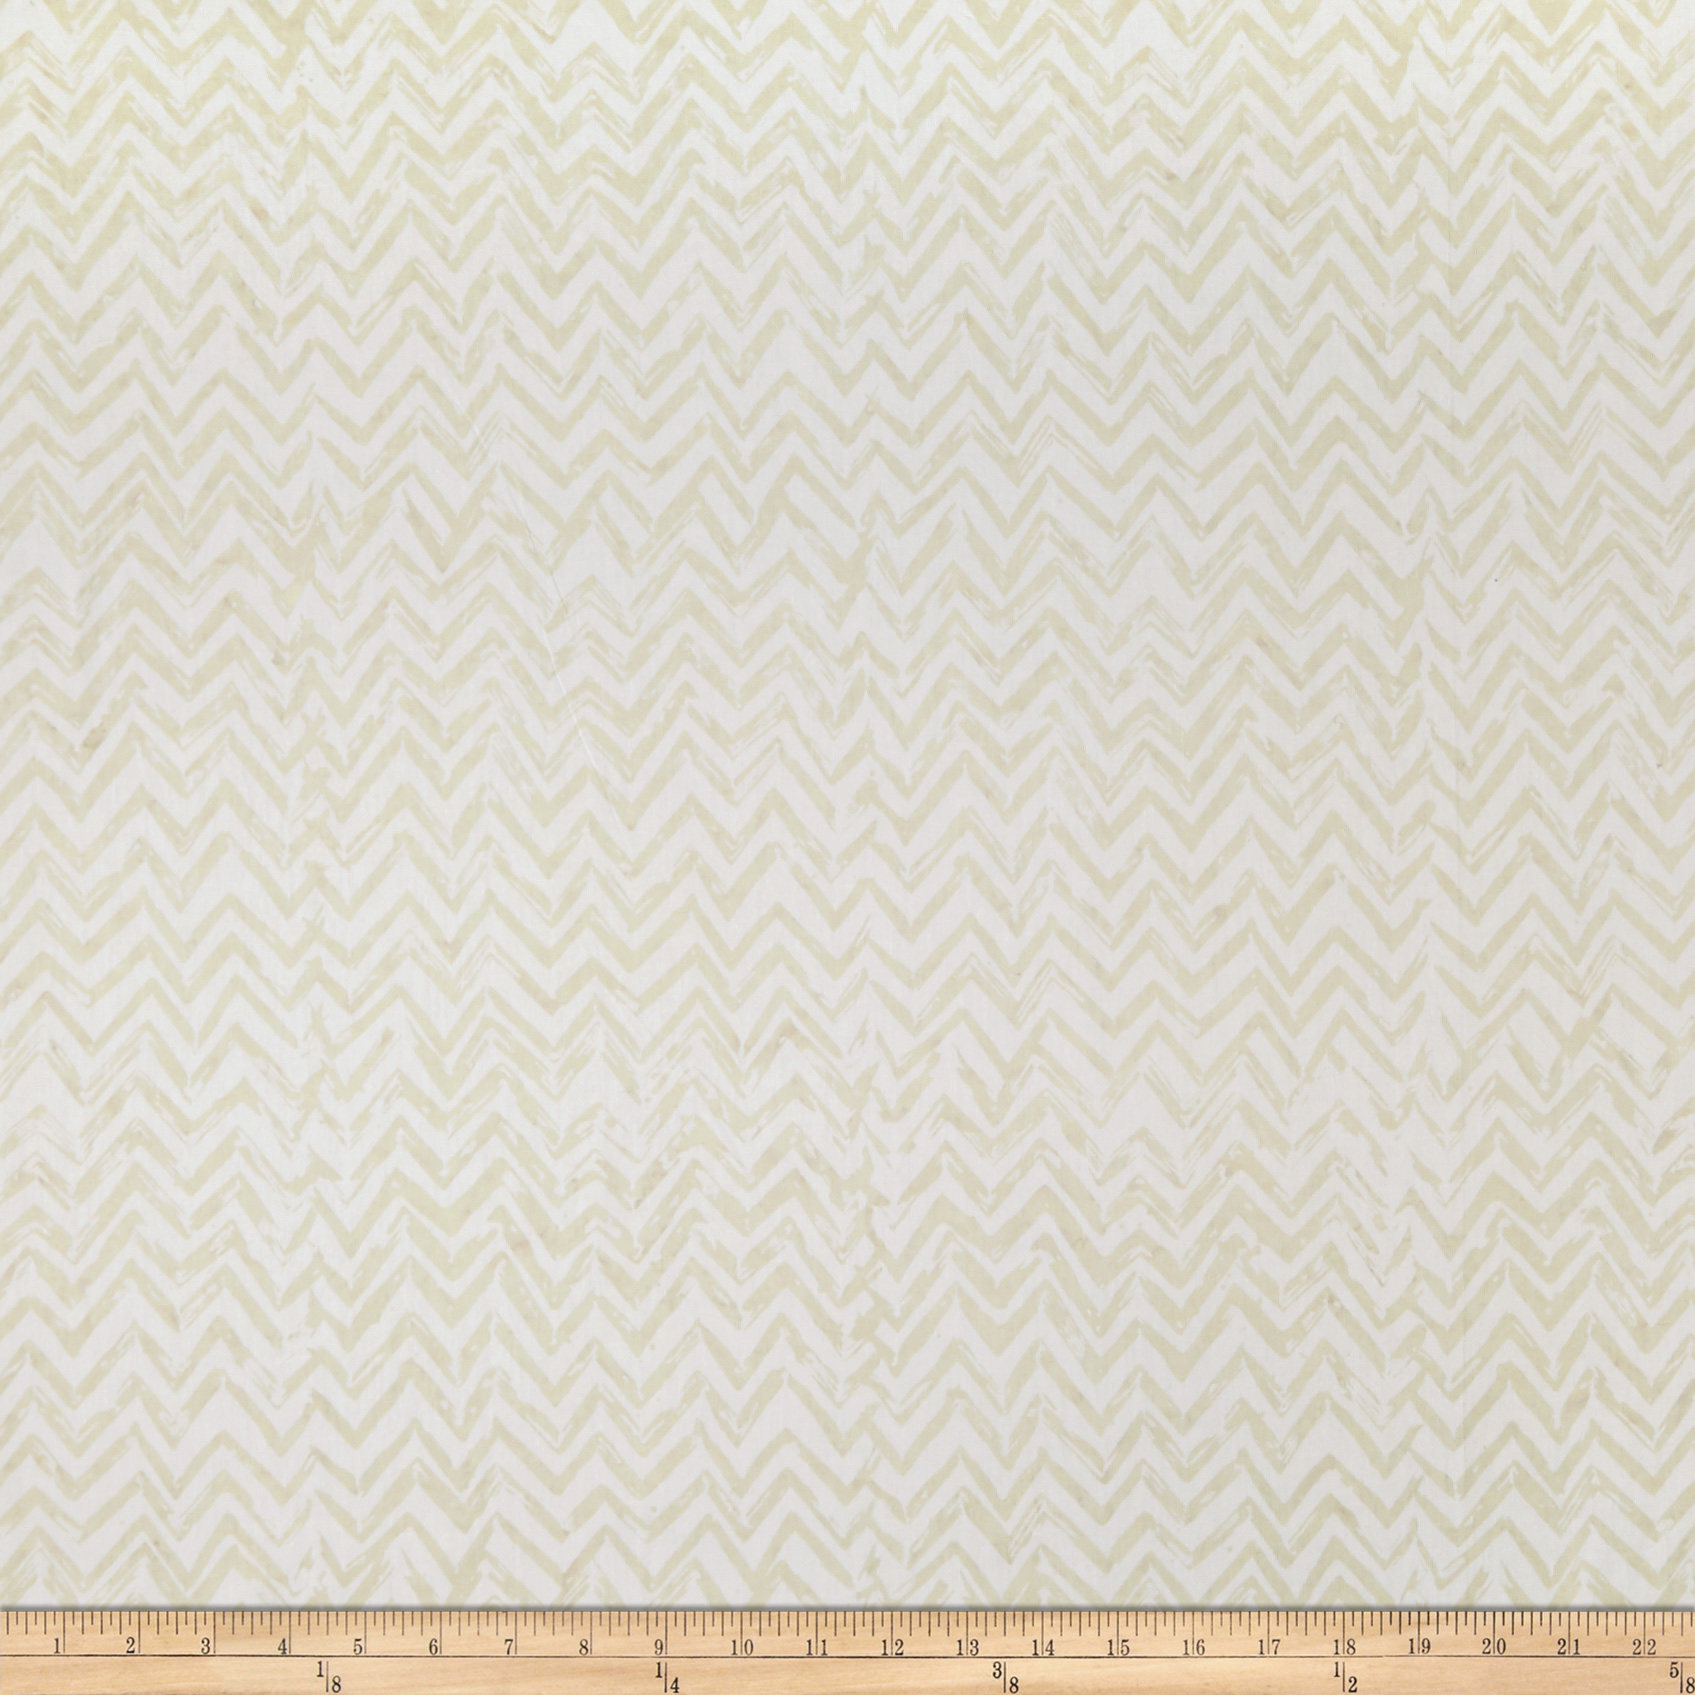 Anthology Batiks Chevron Whisper Fabric